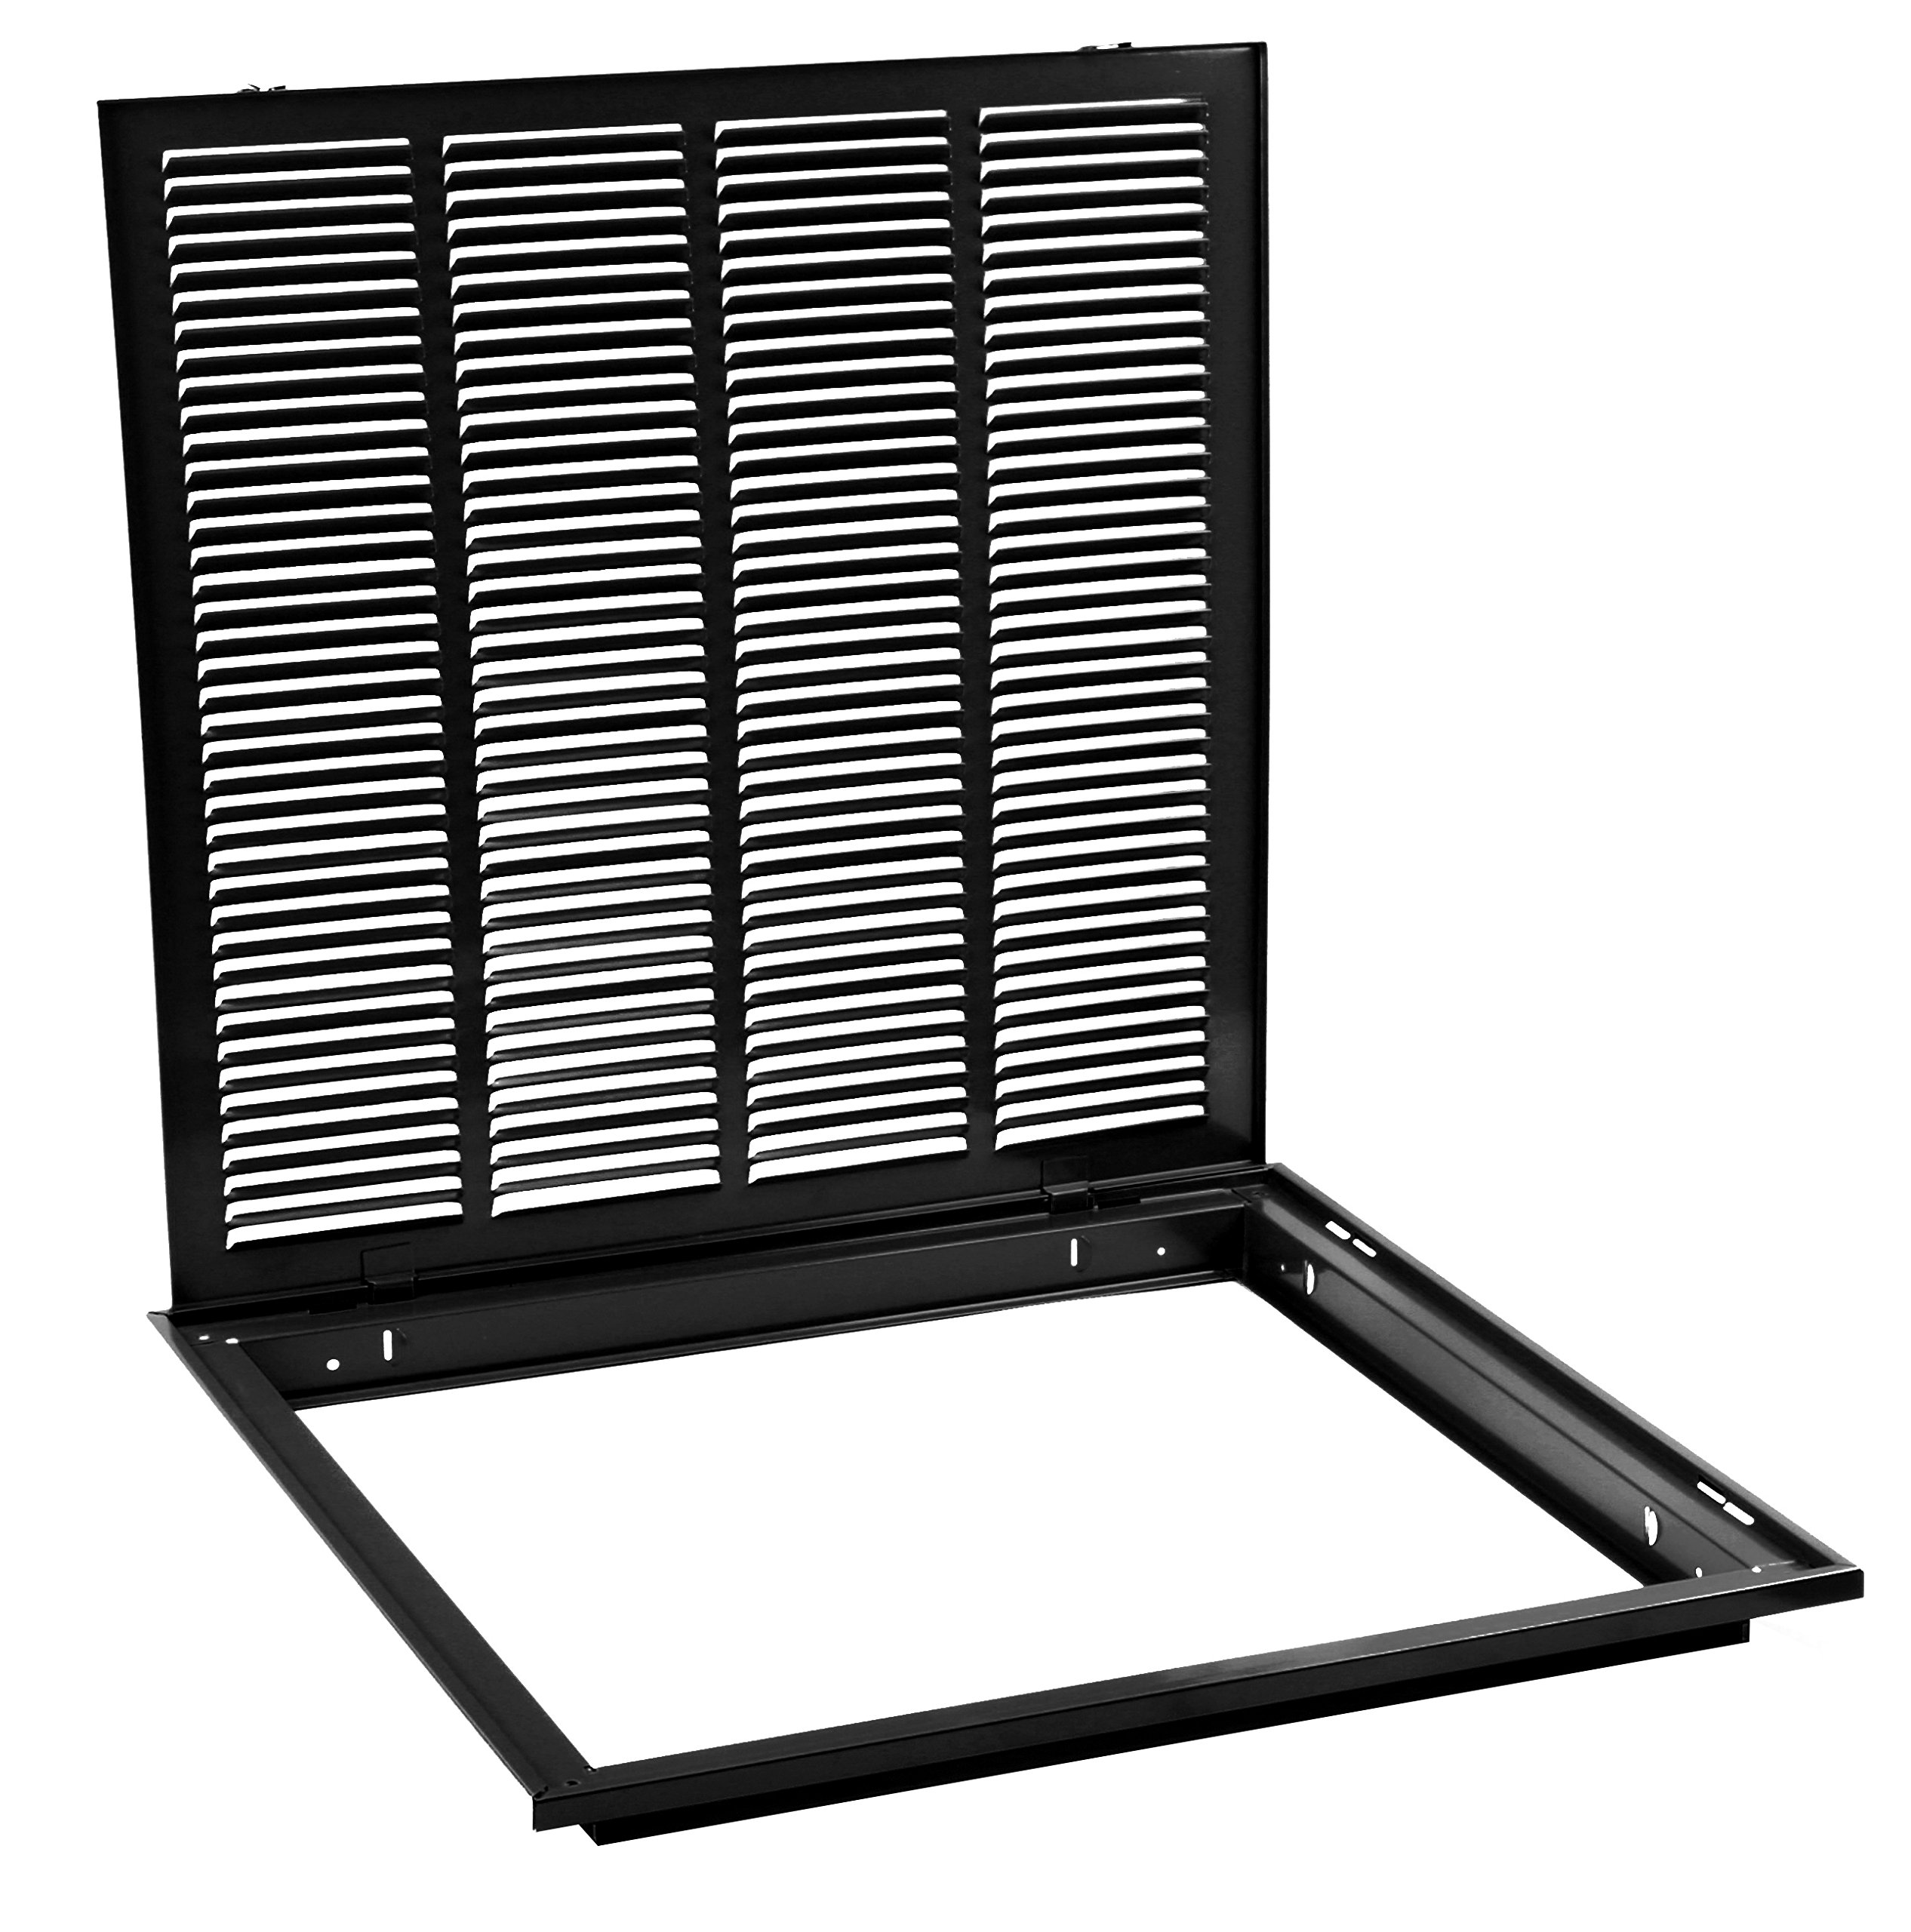 20'' X 20 Steel Return Air Filter Grille for 1'' Filter - Removable Face/Door - HVAC DUCT COVER - Flat Stamped Face - Black [Outer Dimensions: 22.5''w X 22.5''h] by HVAC Premium (Image #2)